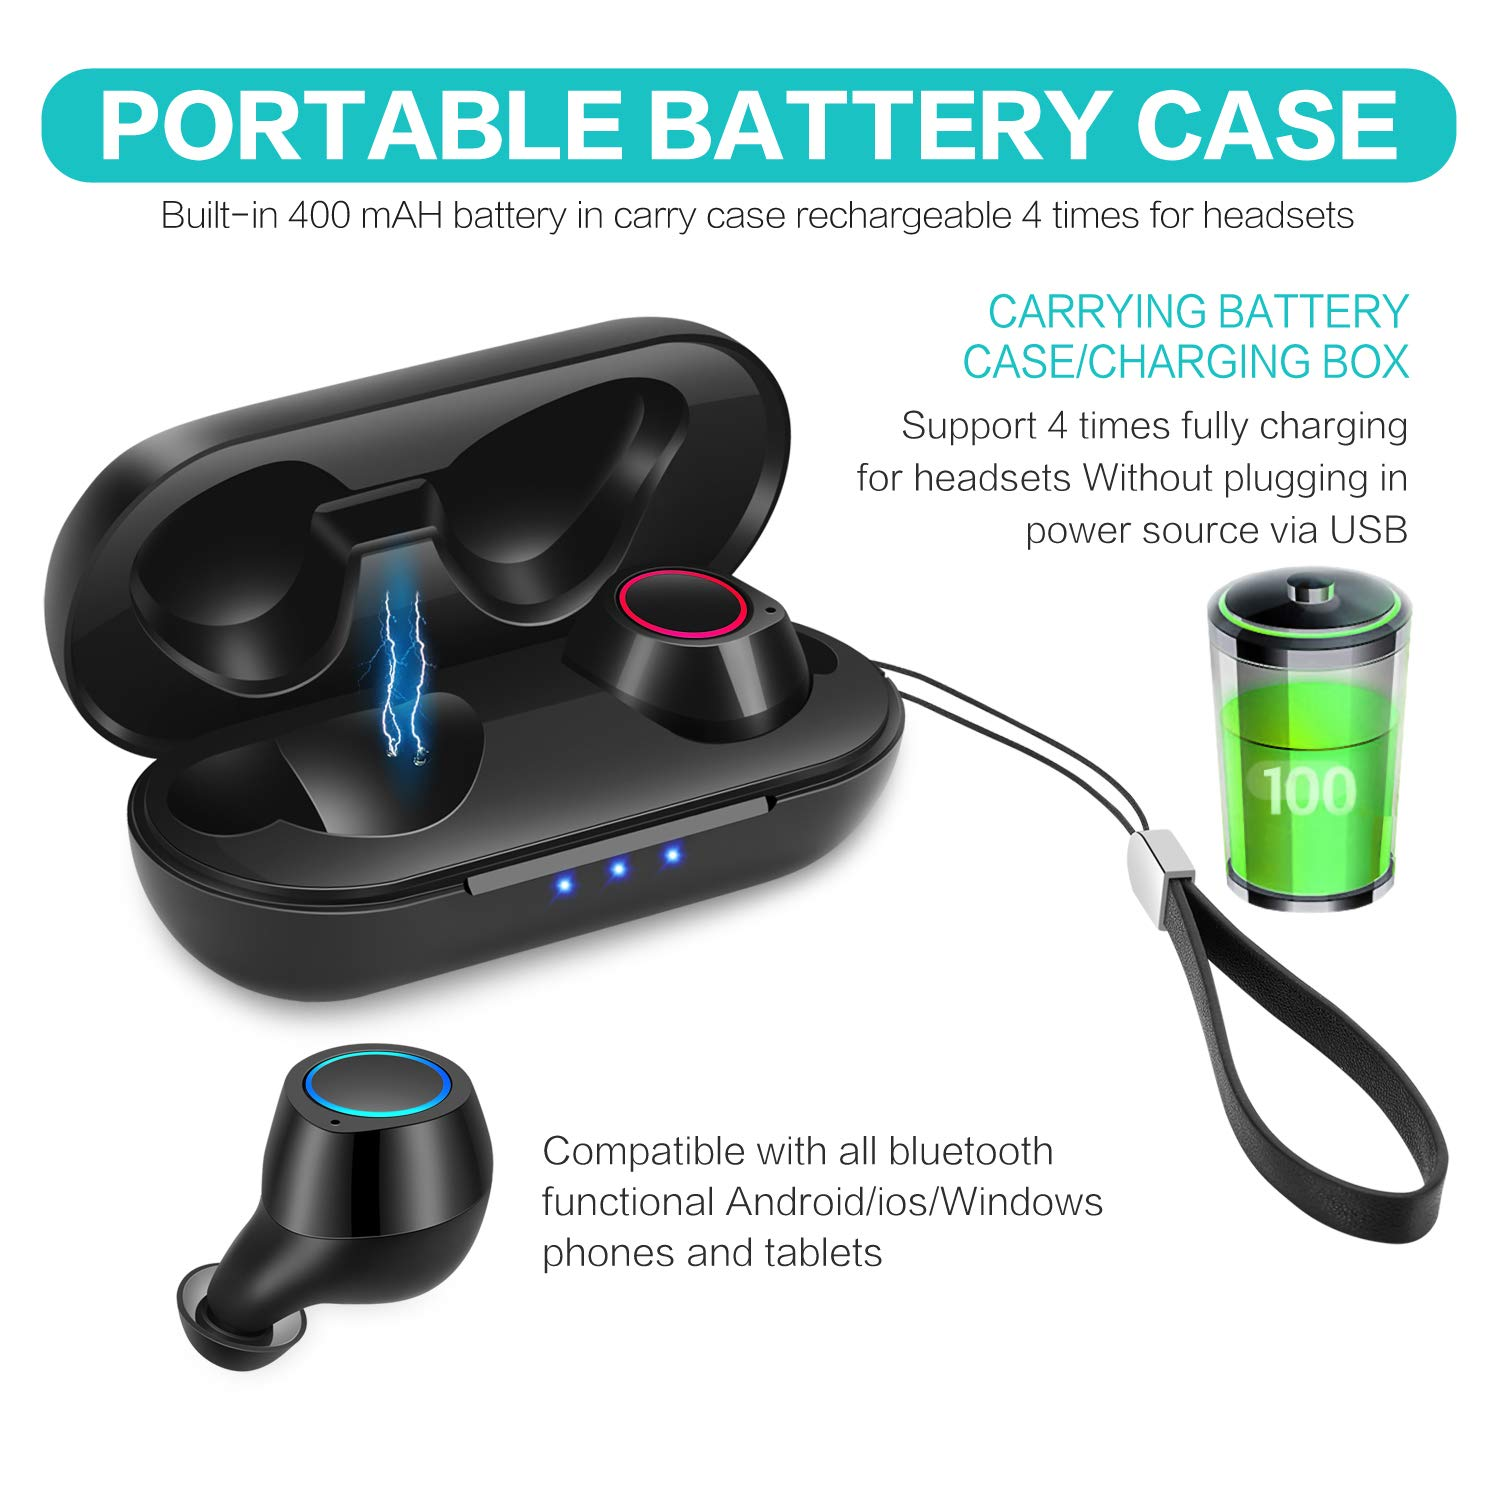 Ailicam True Wireless Earbuds TWS Bluetooth 5.0 IPX6 Waterproof 25 Hours Playtime, TWS Noise Cancelling Earphones Instant Pairing with Mic and Charging Case (Black) by Ailicam (Image #3)